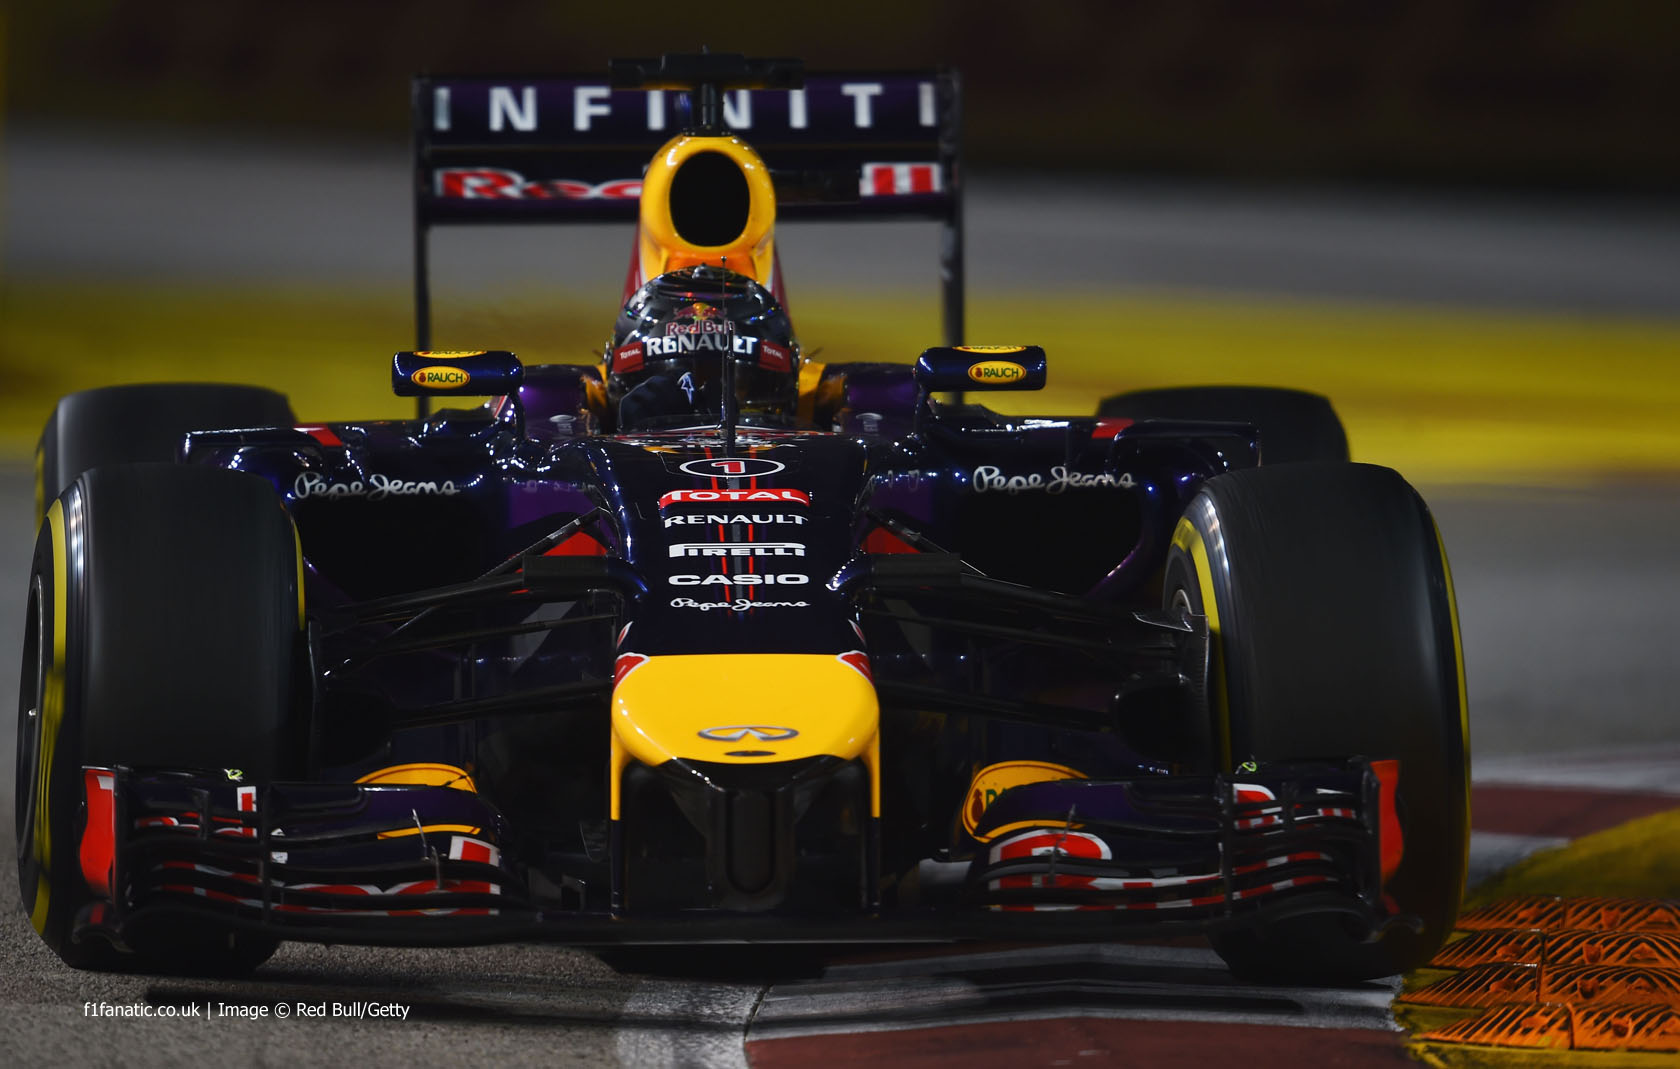 Re: red bull rb10 renault